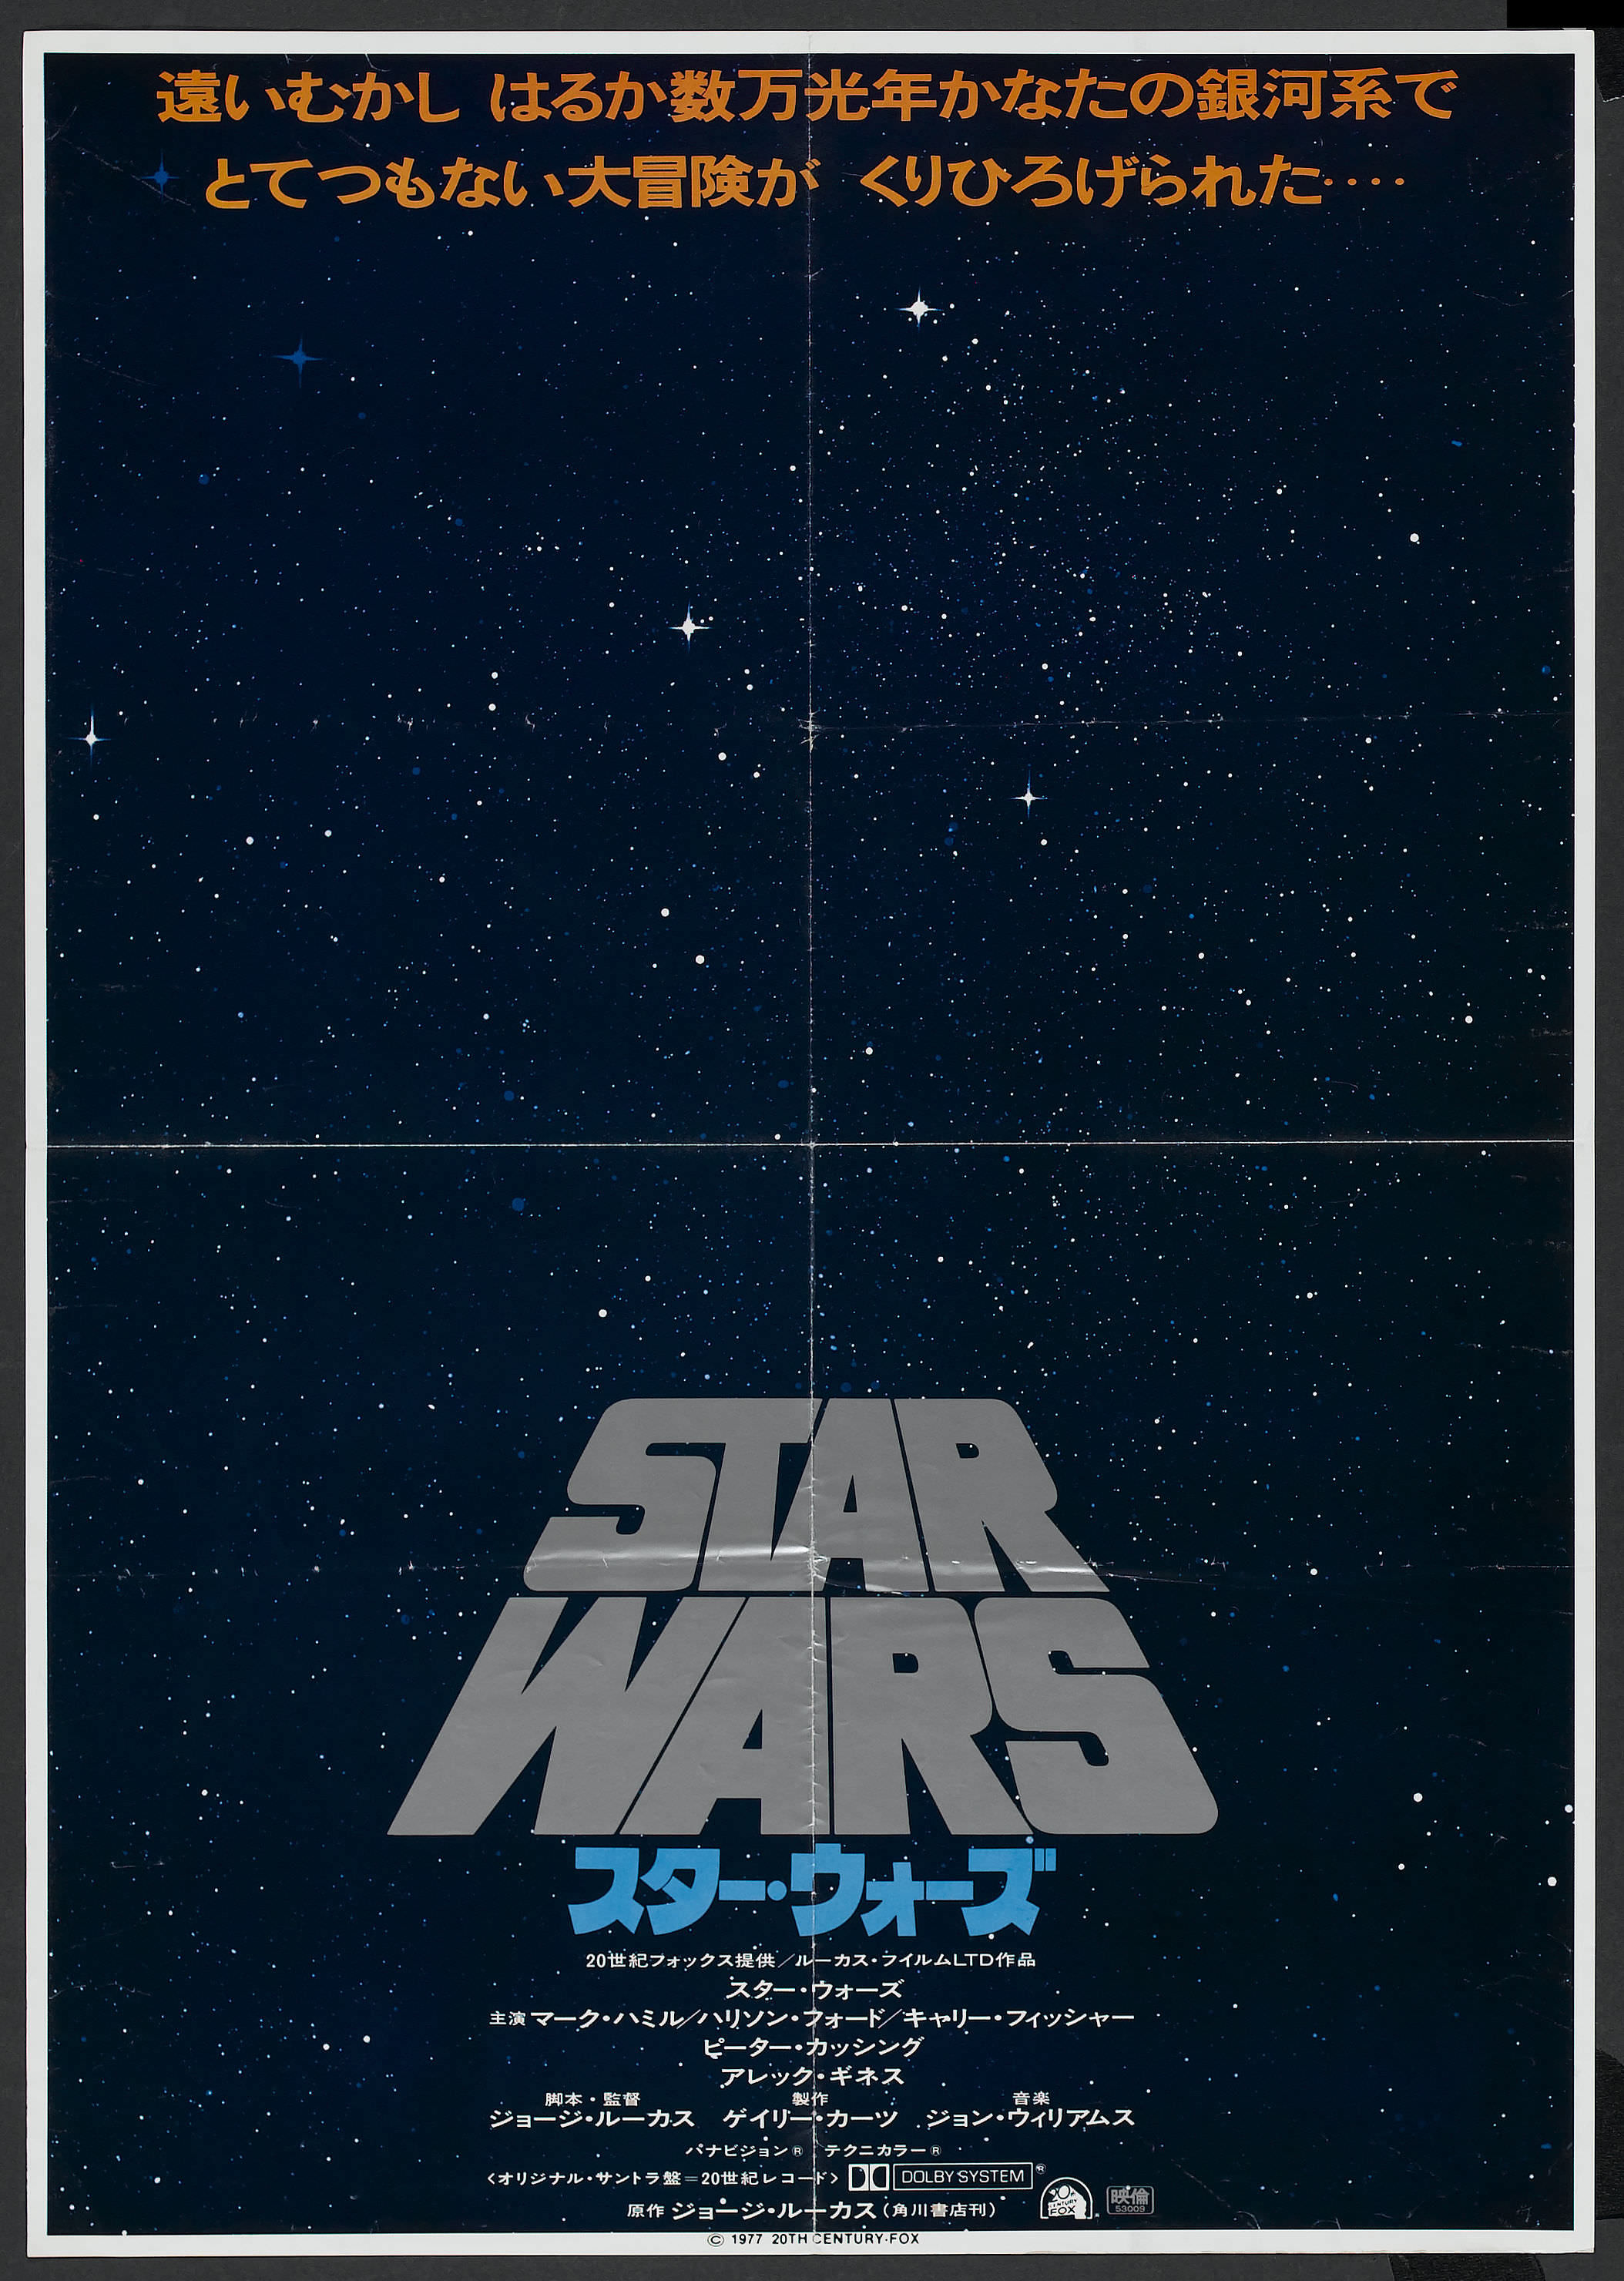 1977 Posters   Star Wars Archives 2108x2960